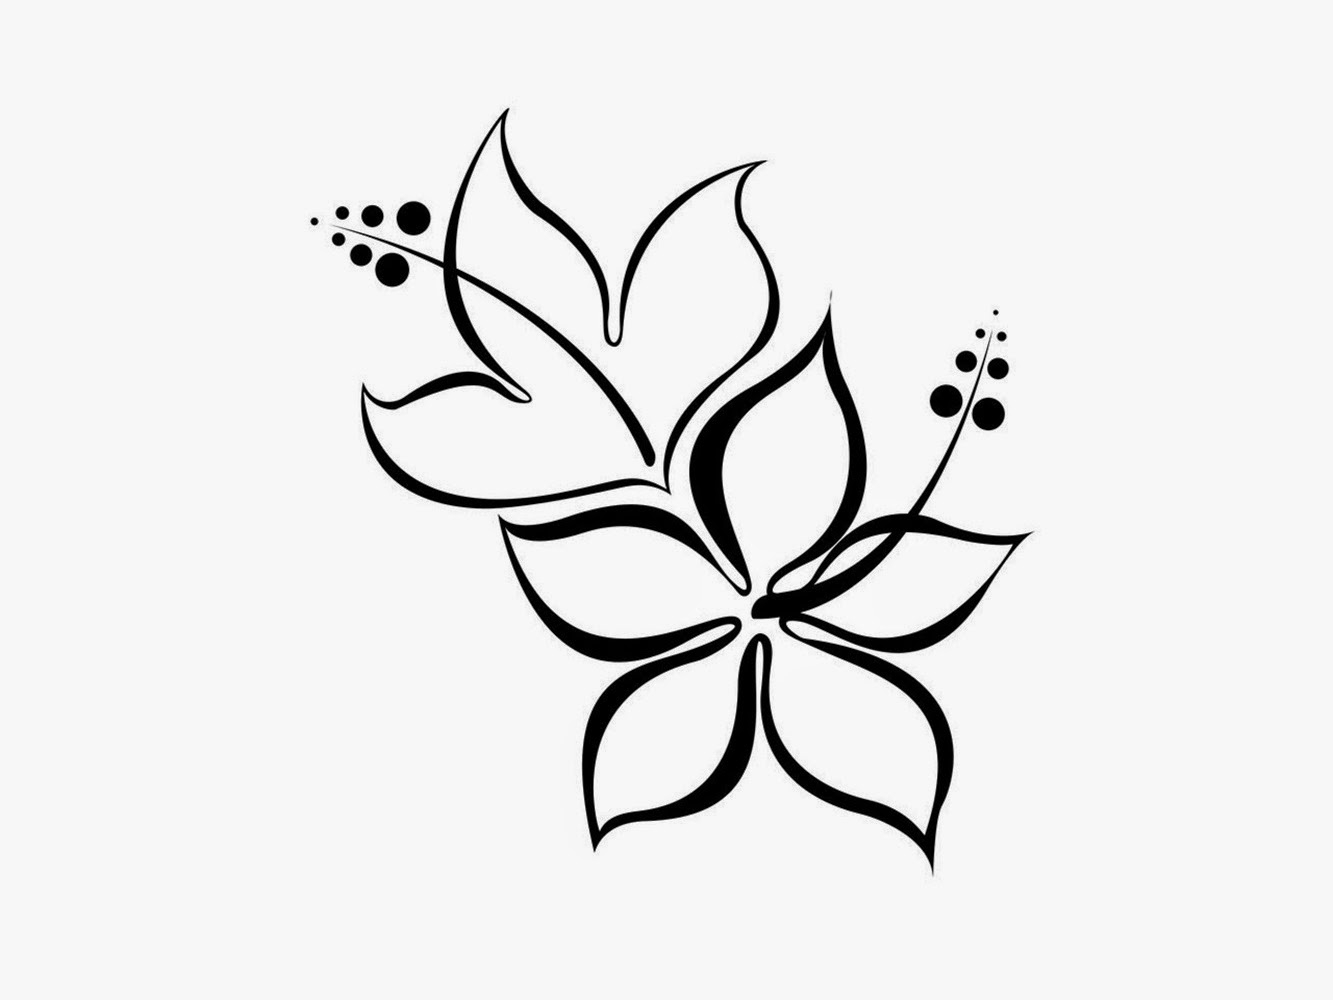 Black and white flowers drawing at getdrawings free for 1333x1000 simple flower designs pencil drawing black and white flower design mightylinksfo